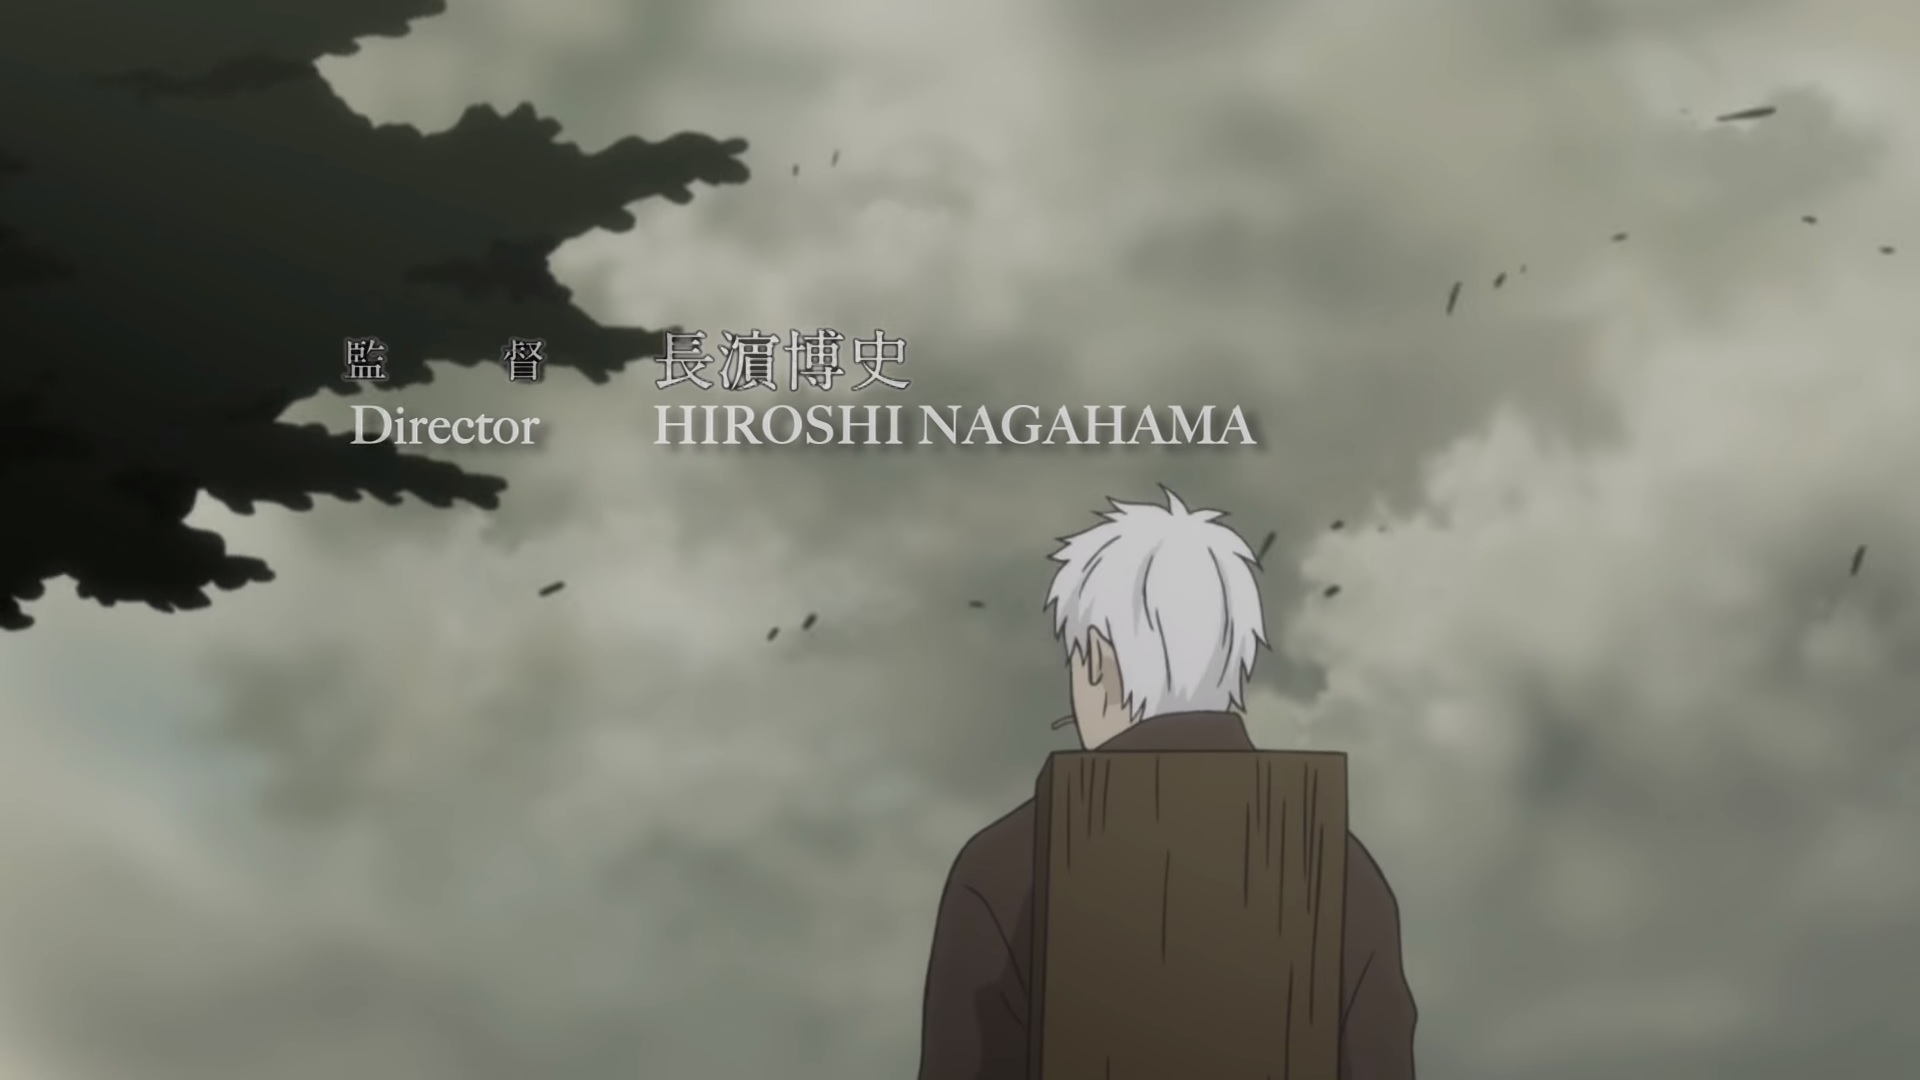 Mushishi credits showing Ginko from the back and the credit for Director: Hiroshi Nagahama.